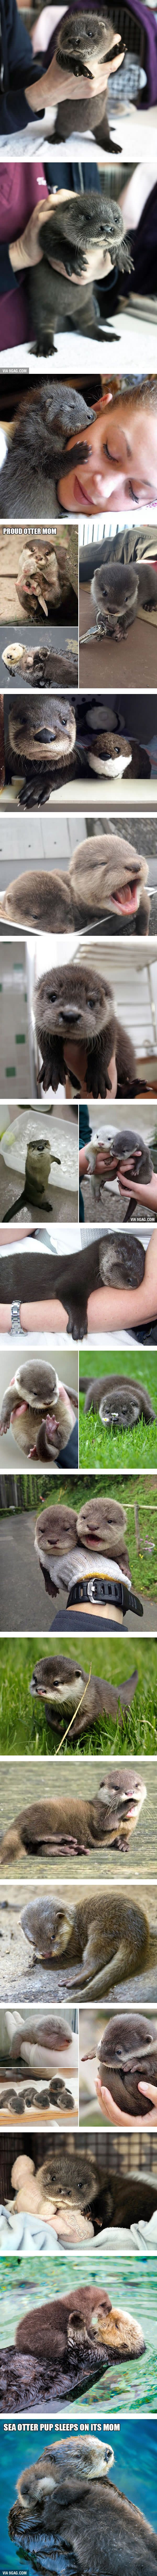 Cuteness overloaded! Baby Otters too otterable !!